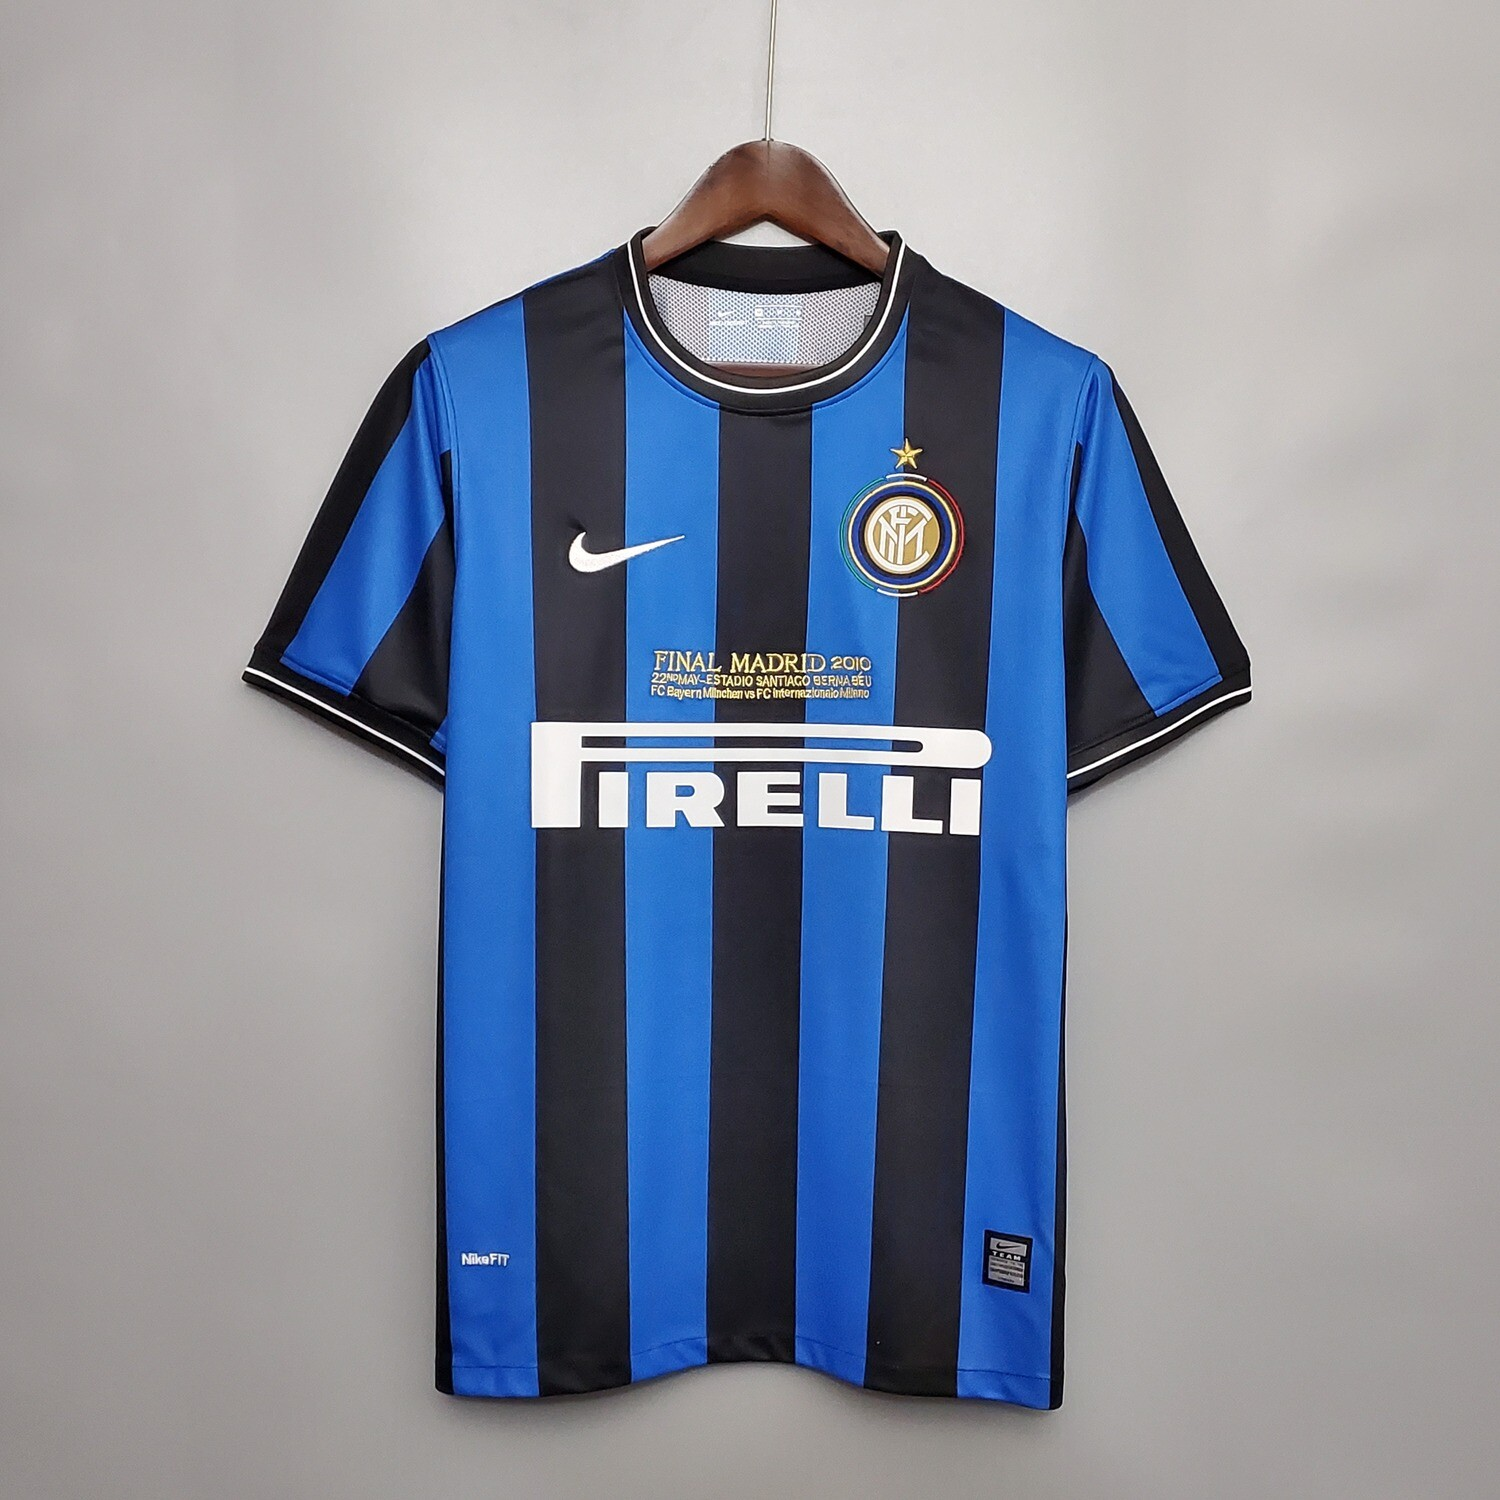 Inter Milan 2009-10 Retro Home UCL Final Jersey [Pre-paid Only]